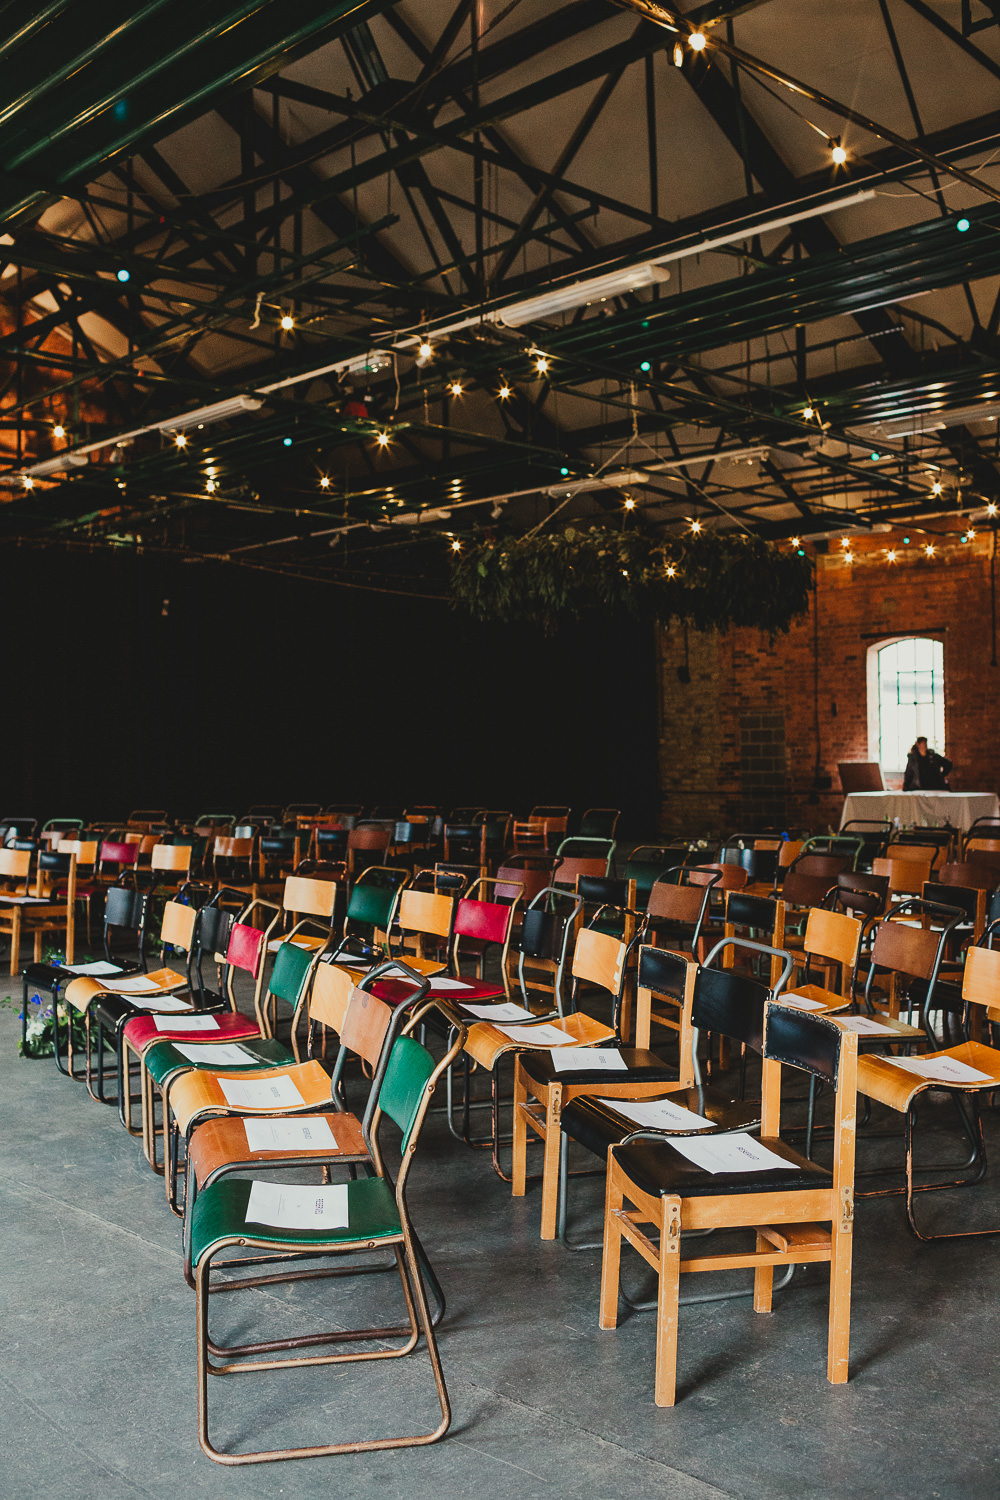 Warehouse Venue Mismatched Industrial School Chairs Elsecar Heritage Centre Wedding Ayesha Photography